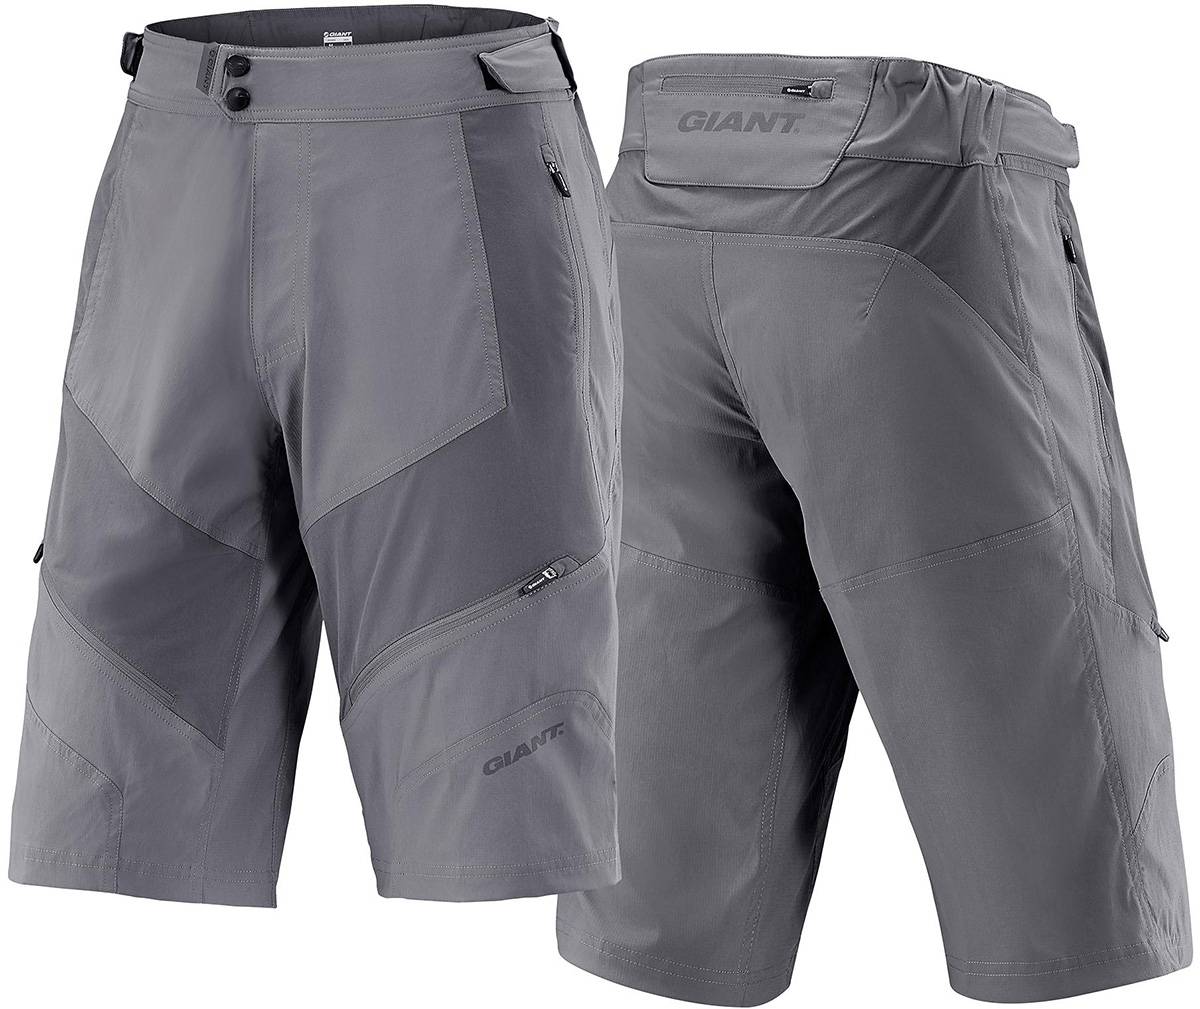 bbb2b7ab040 Giant Performance Trail Shorts - www.fitchburgcycles.com